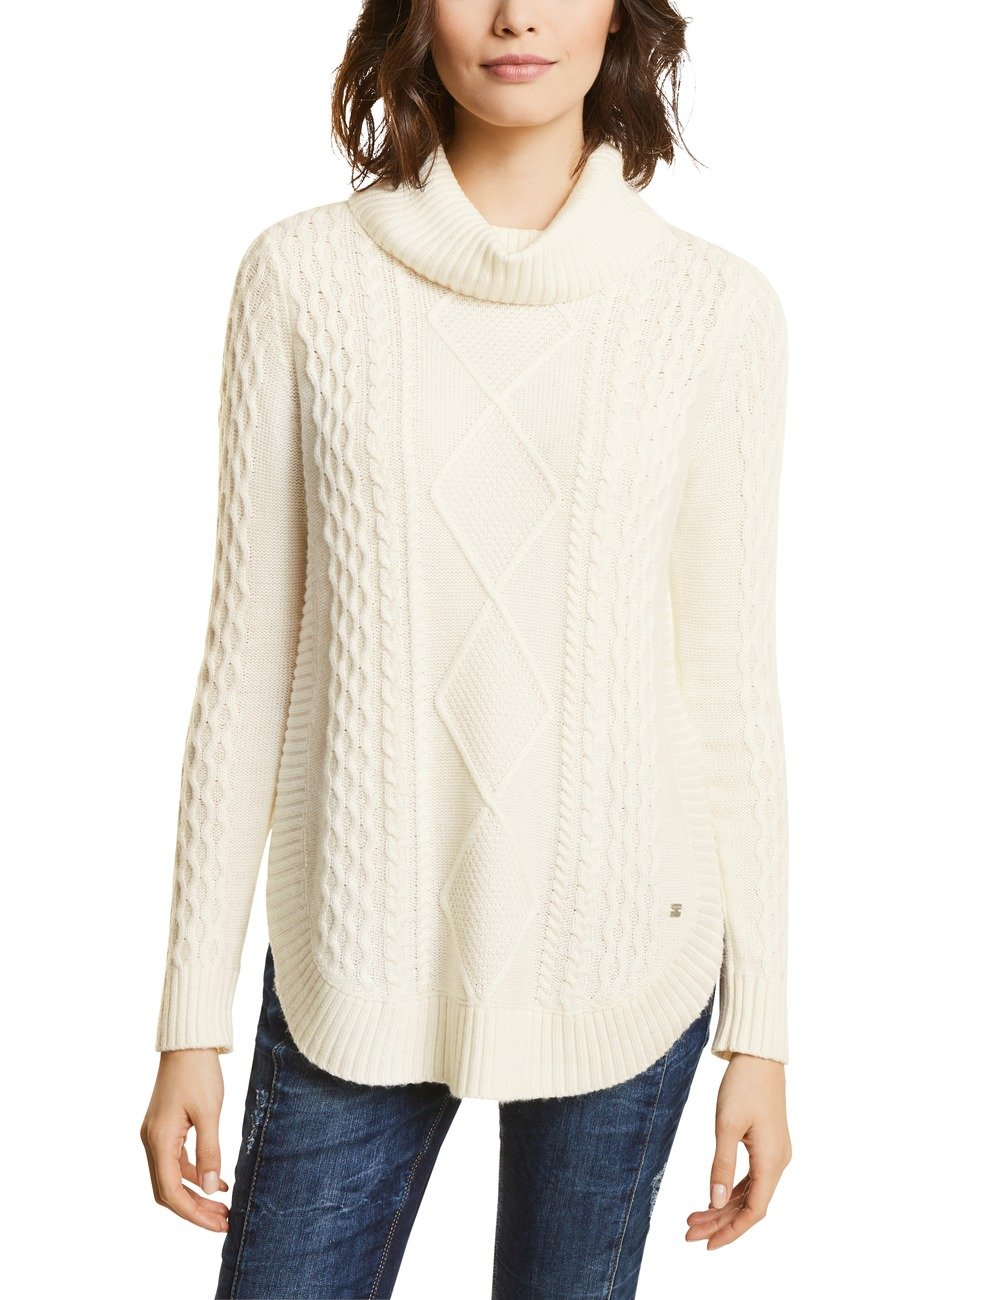 With Street PullWeißoff One Fabrican44Femme Cable Du Bottom 1010846taille Pullover Curved White 34j5qARL